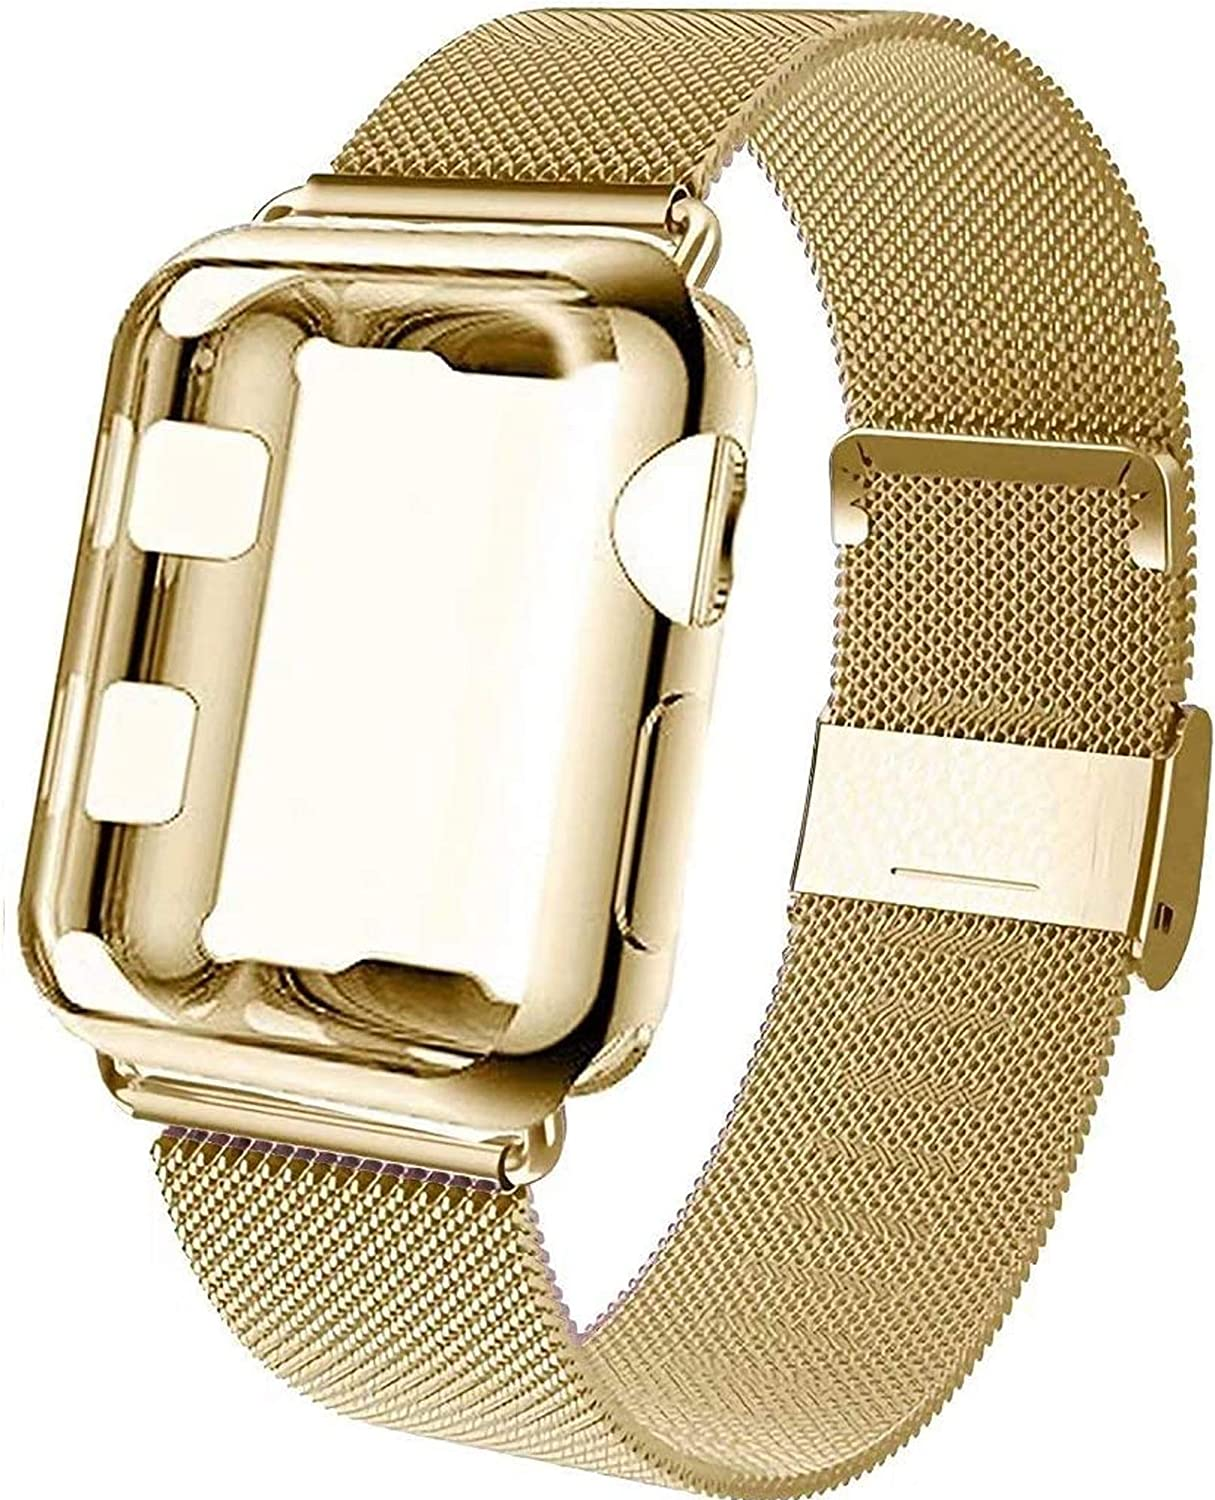 GBPOOT Compatible for Apple Watch Band 38mm 40mm 42mm 44mm with Screen Protector Case, Sports Wristband Strap Replacement Band with Protective Case for Iwatch Series 6/SE/5/4/3/2/1,44mm,Yellow Gold